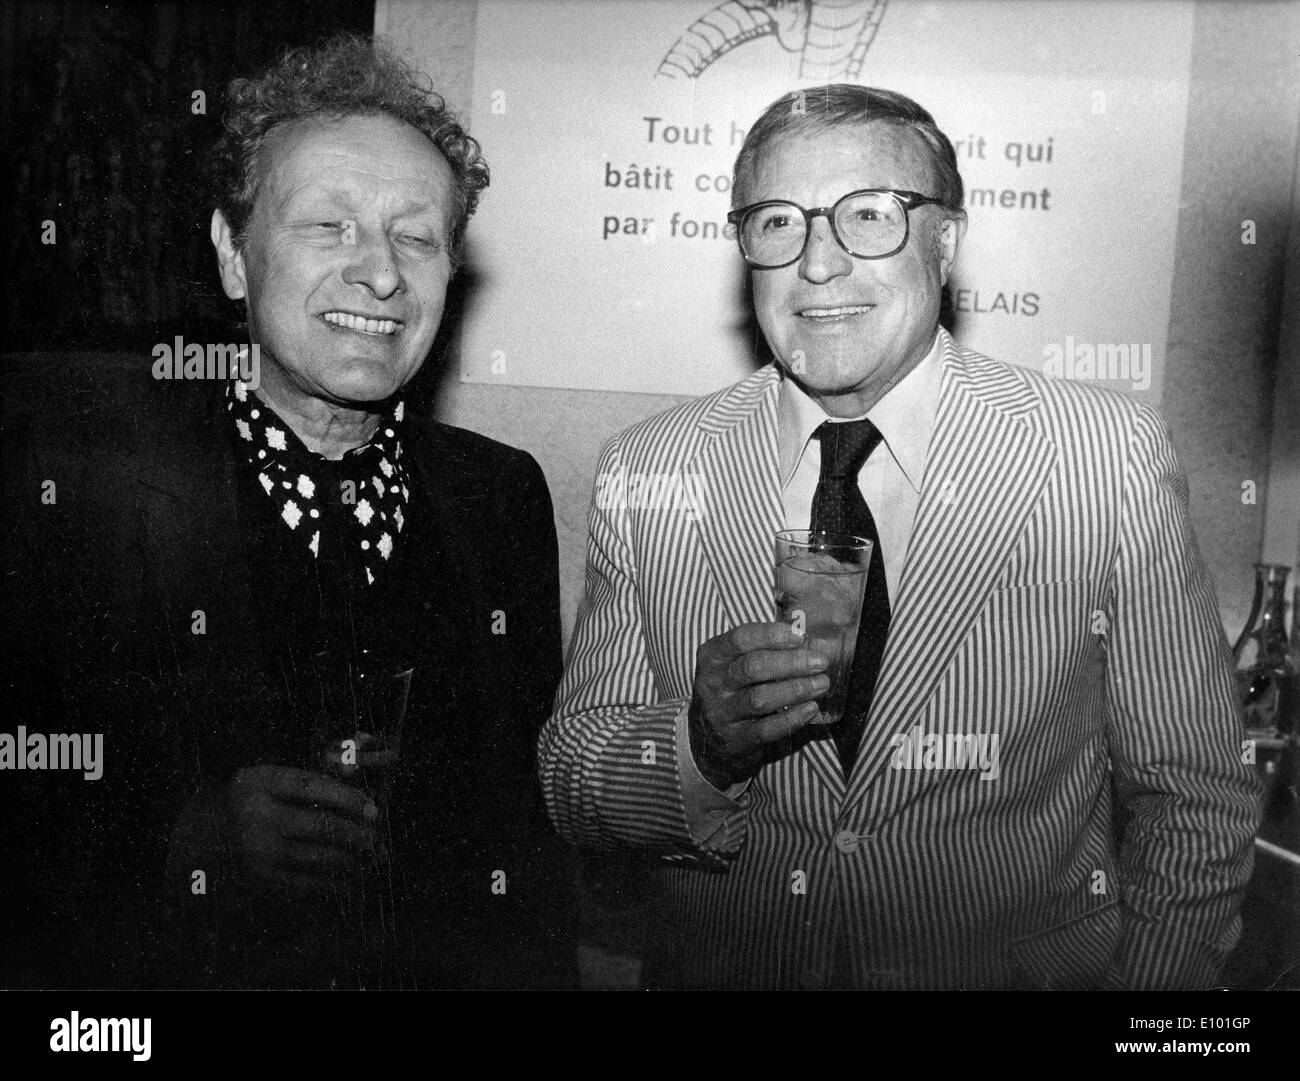 Gene Kelly and Jean-Louis Barrault at press reception - Stock Image